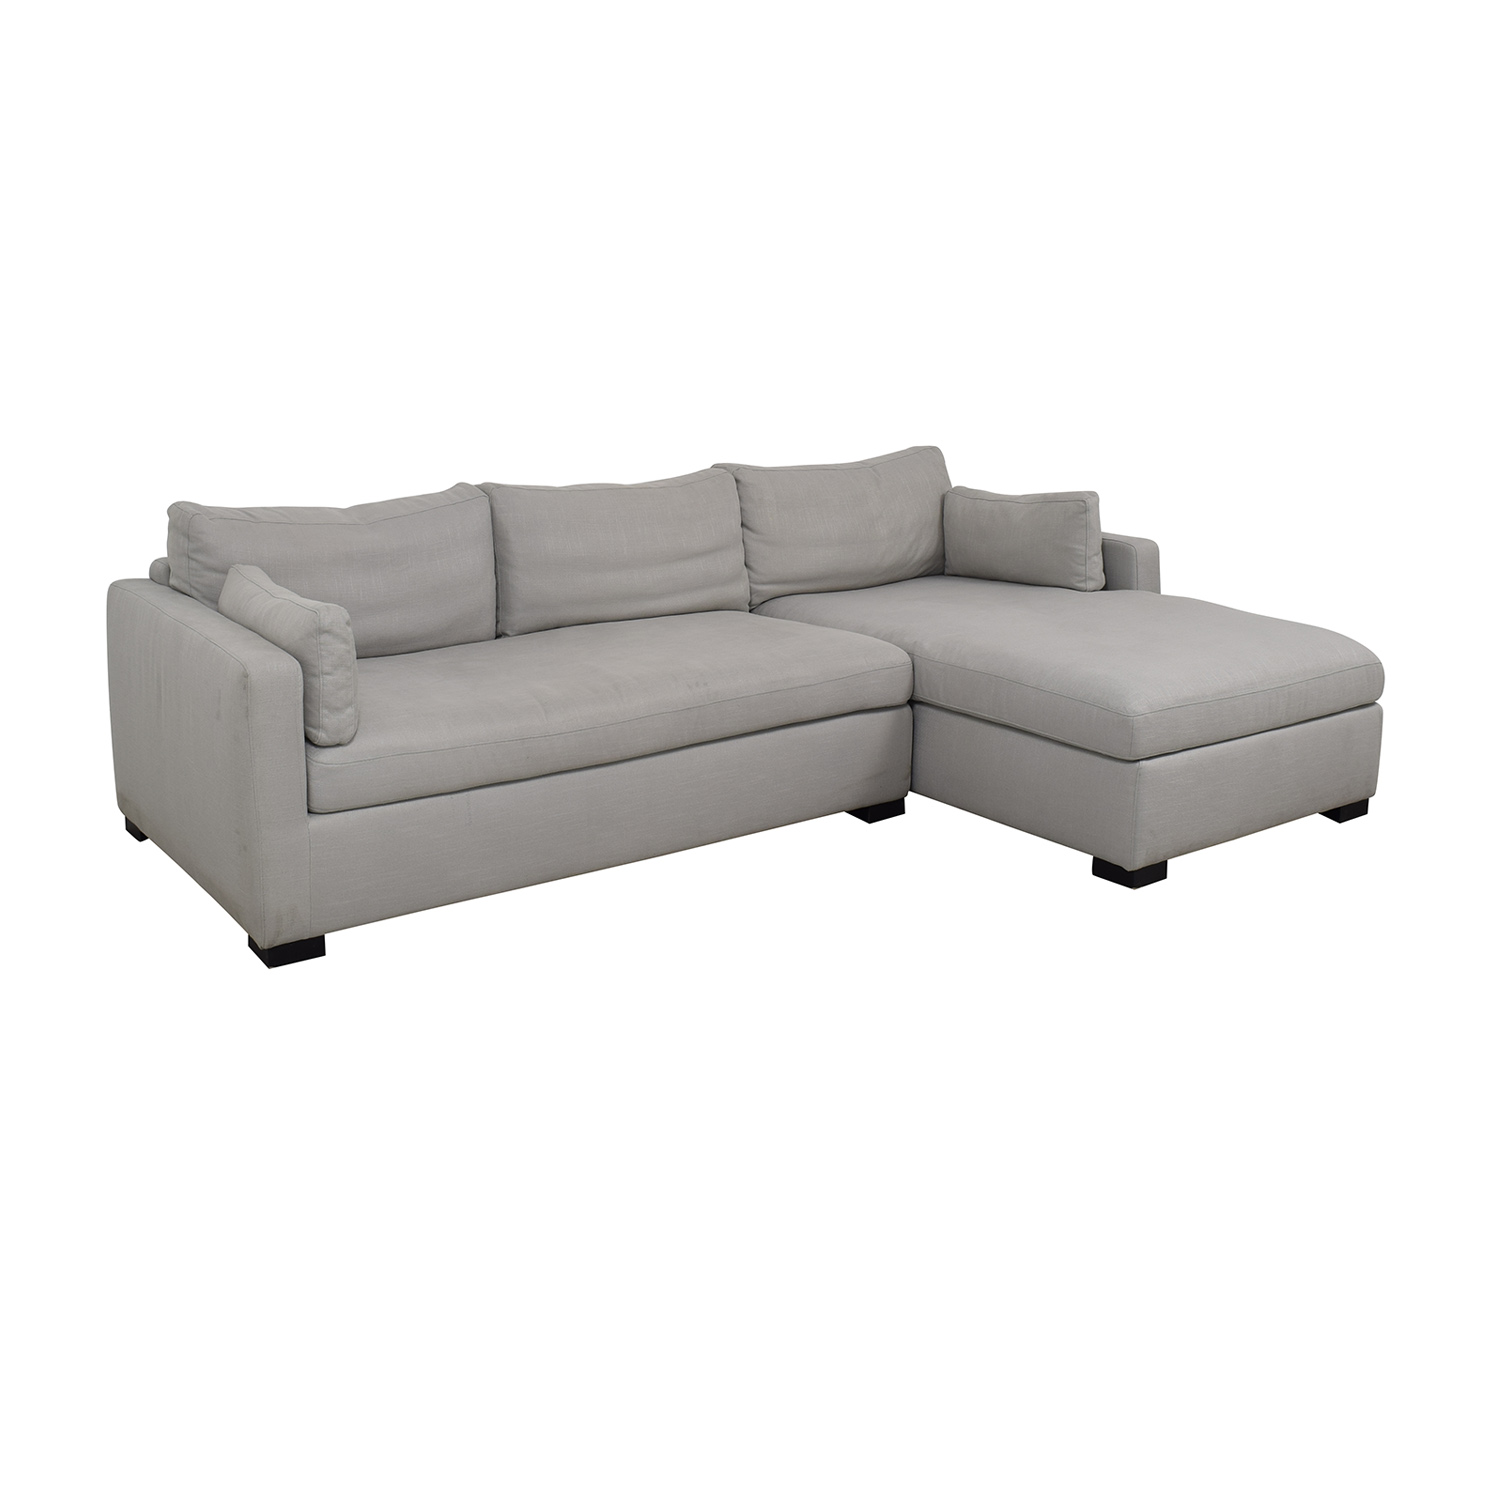 Interior Define Charley Beige Heavy Cloth Right Chaise Sectional Sectionals